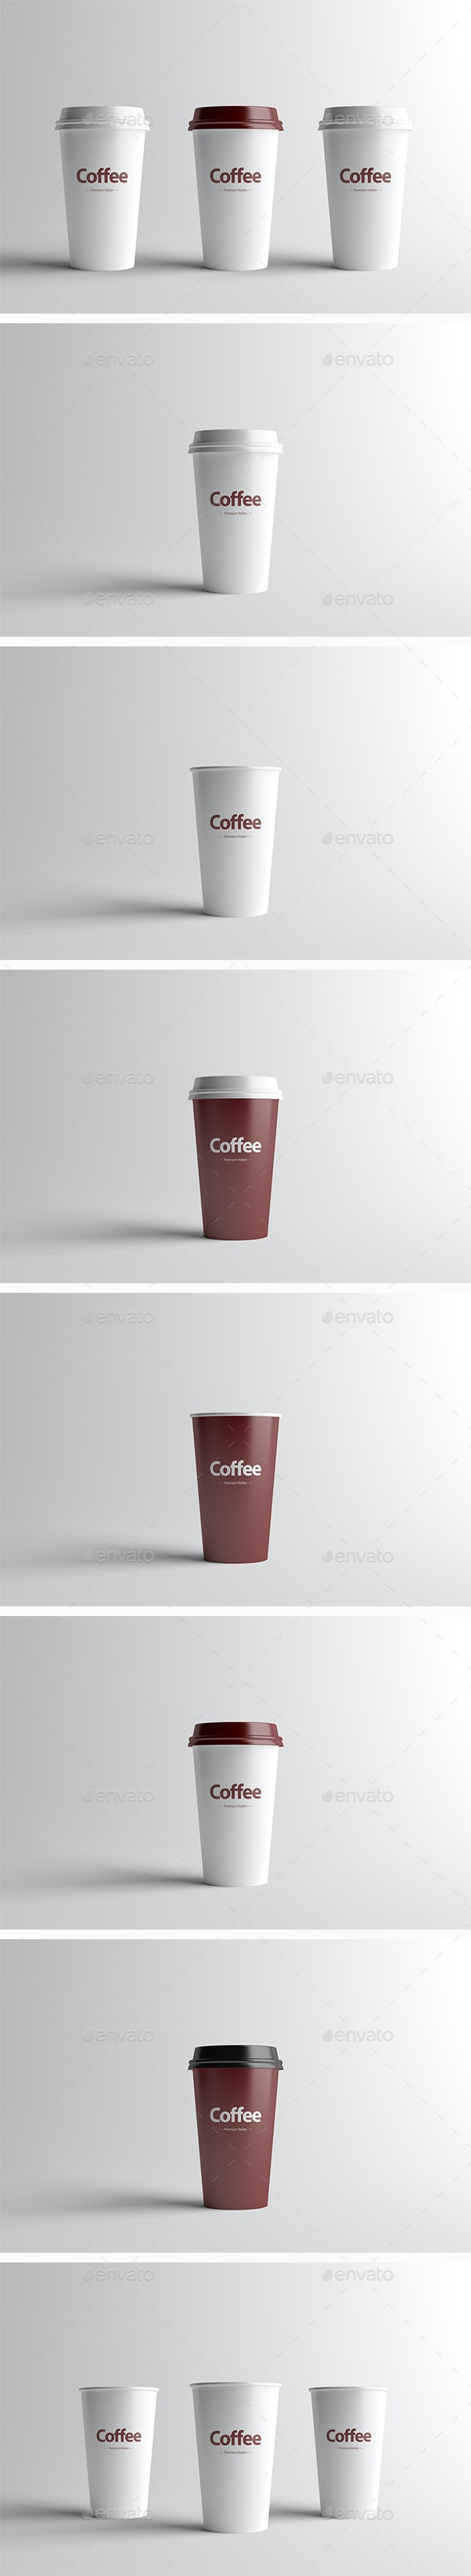 Paper Coffee Cup Packaging Mock-Up - Medium - Food and Drink Packaging